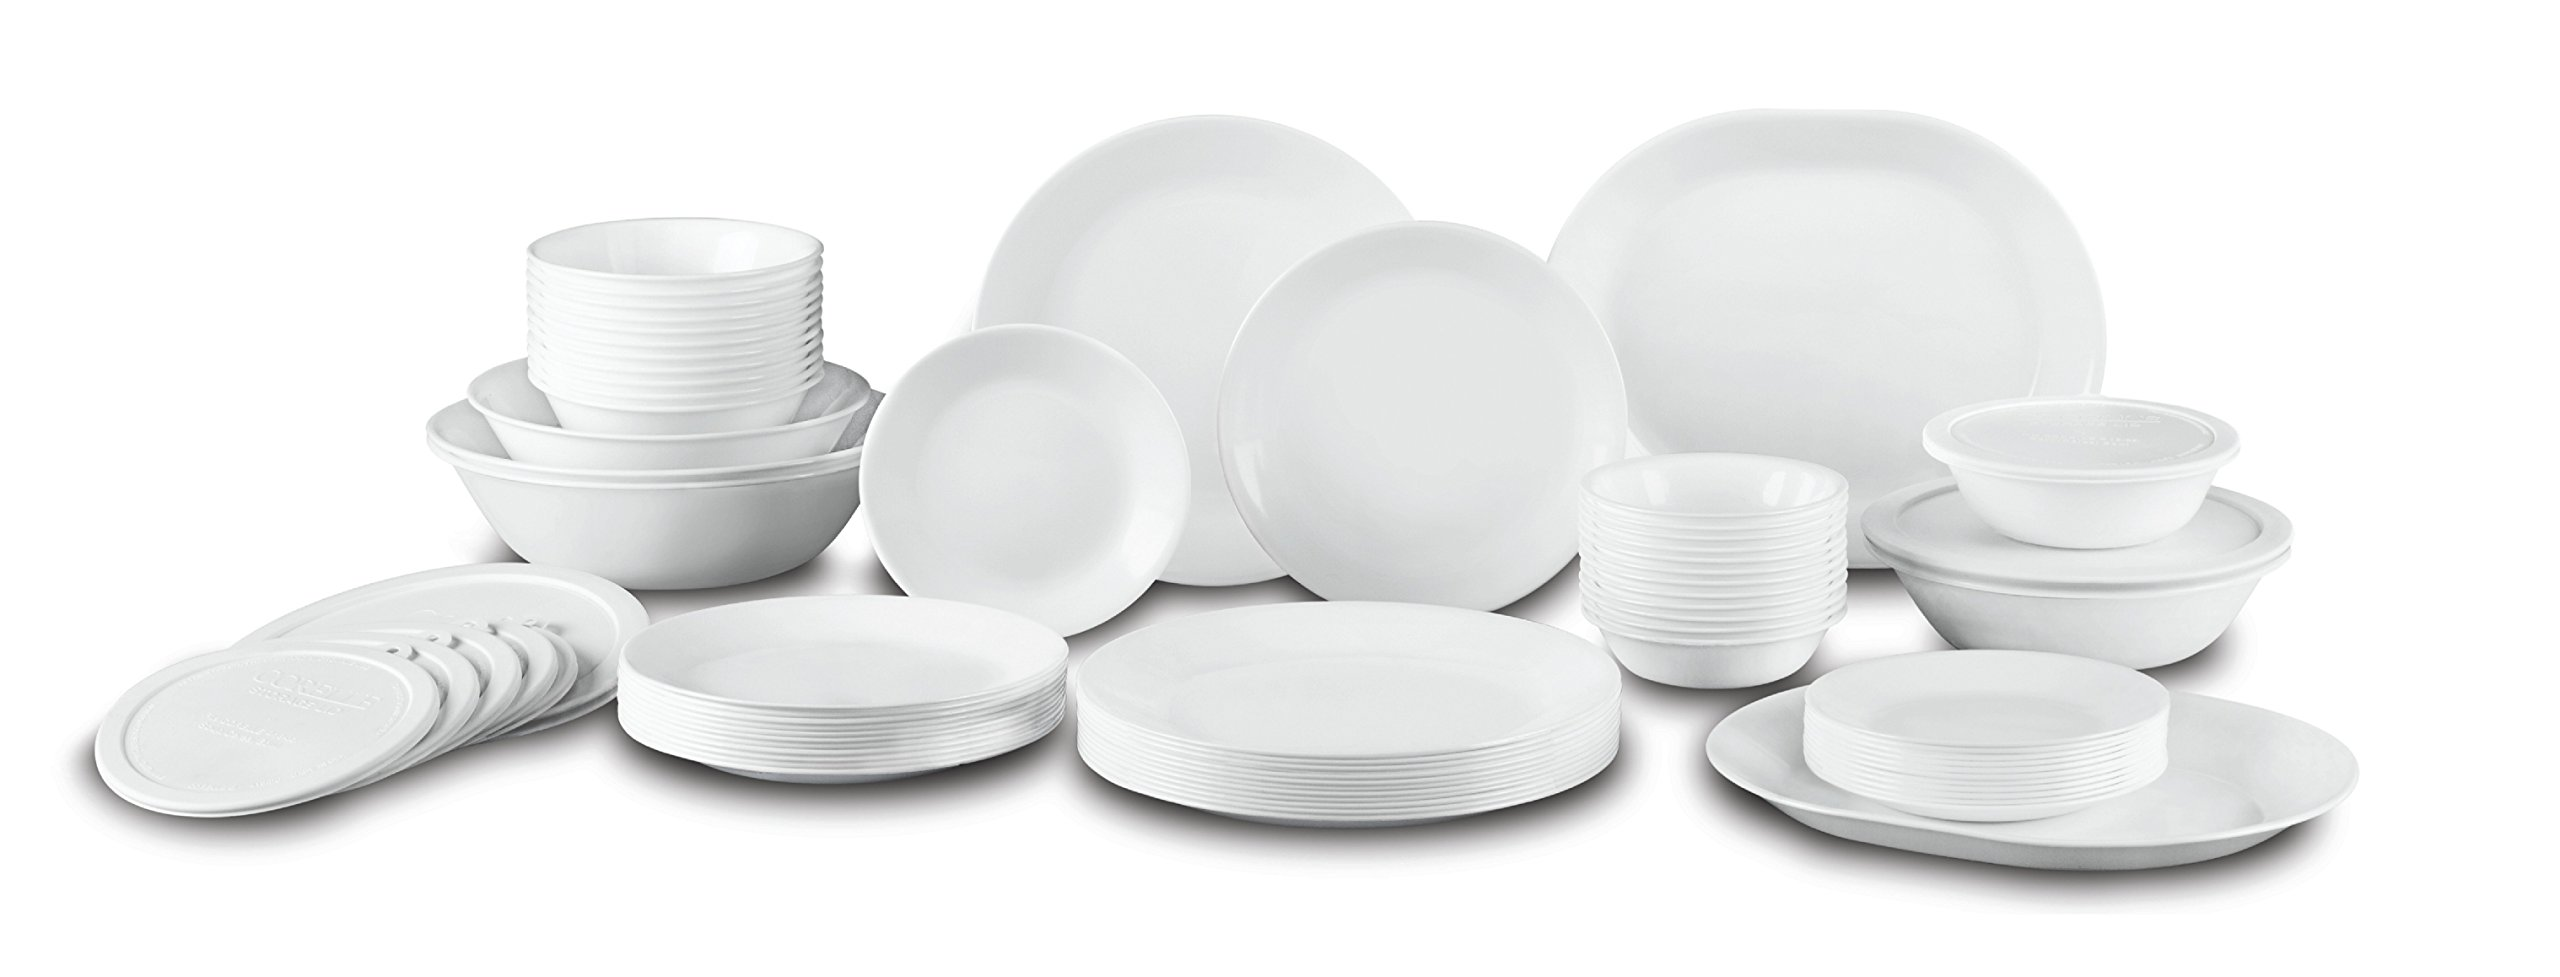 Corelle Livingware 74 Piece Dinnerware Set with Storage Lids, Service for 12, White by Corelle